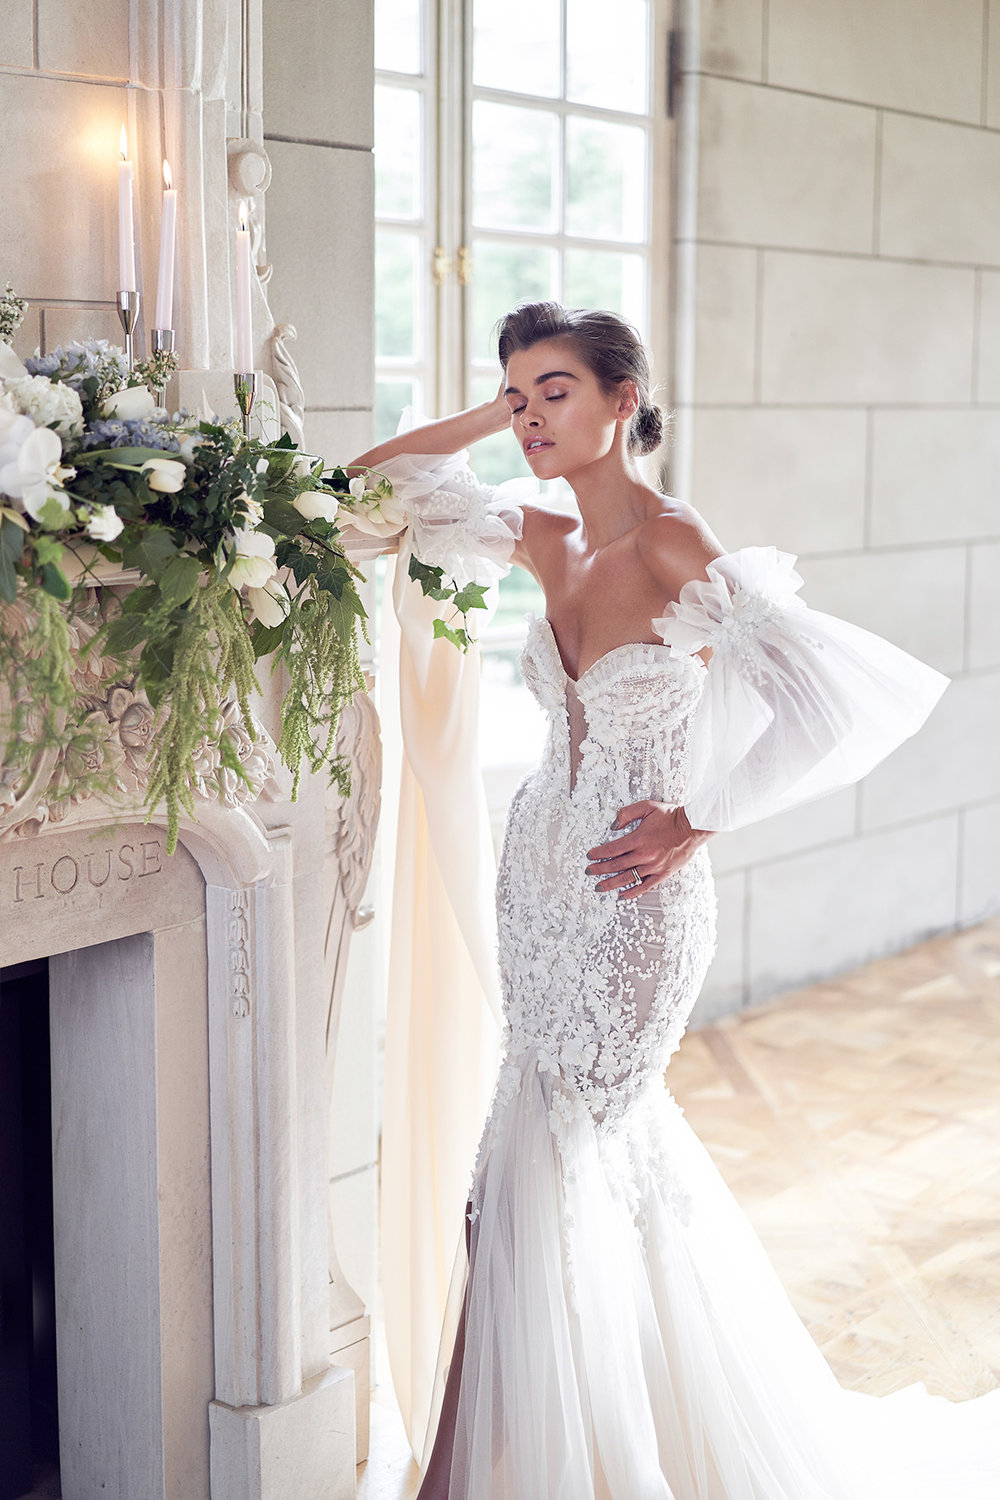 classic and chic wedding. Pallas Couture Wedding Dress. Campbell point house by lost in love photography